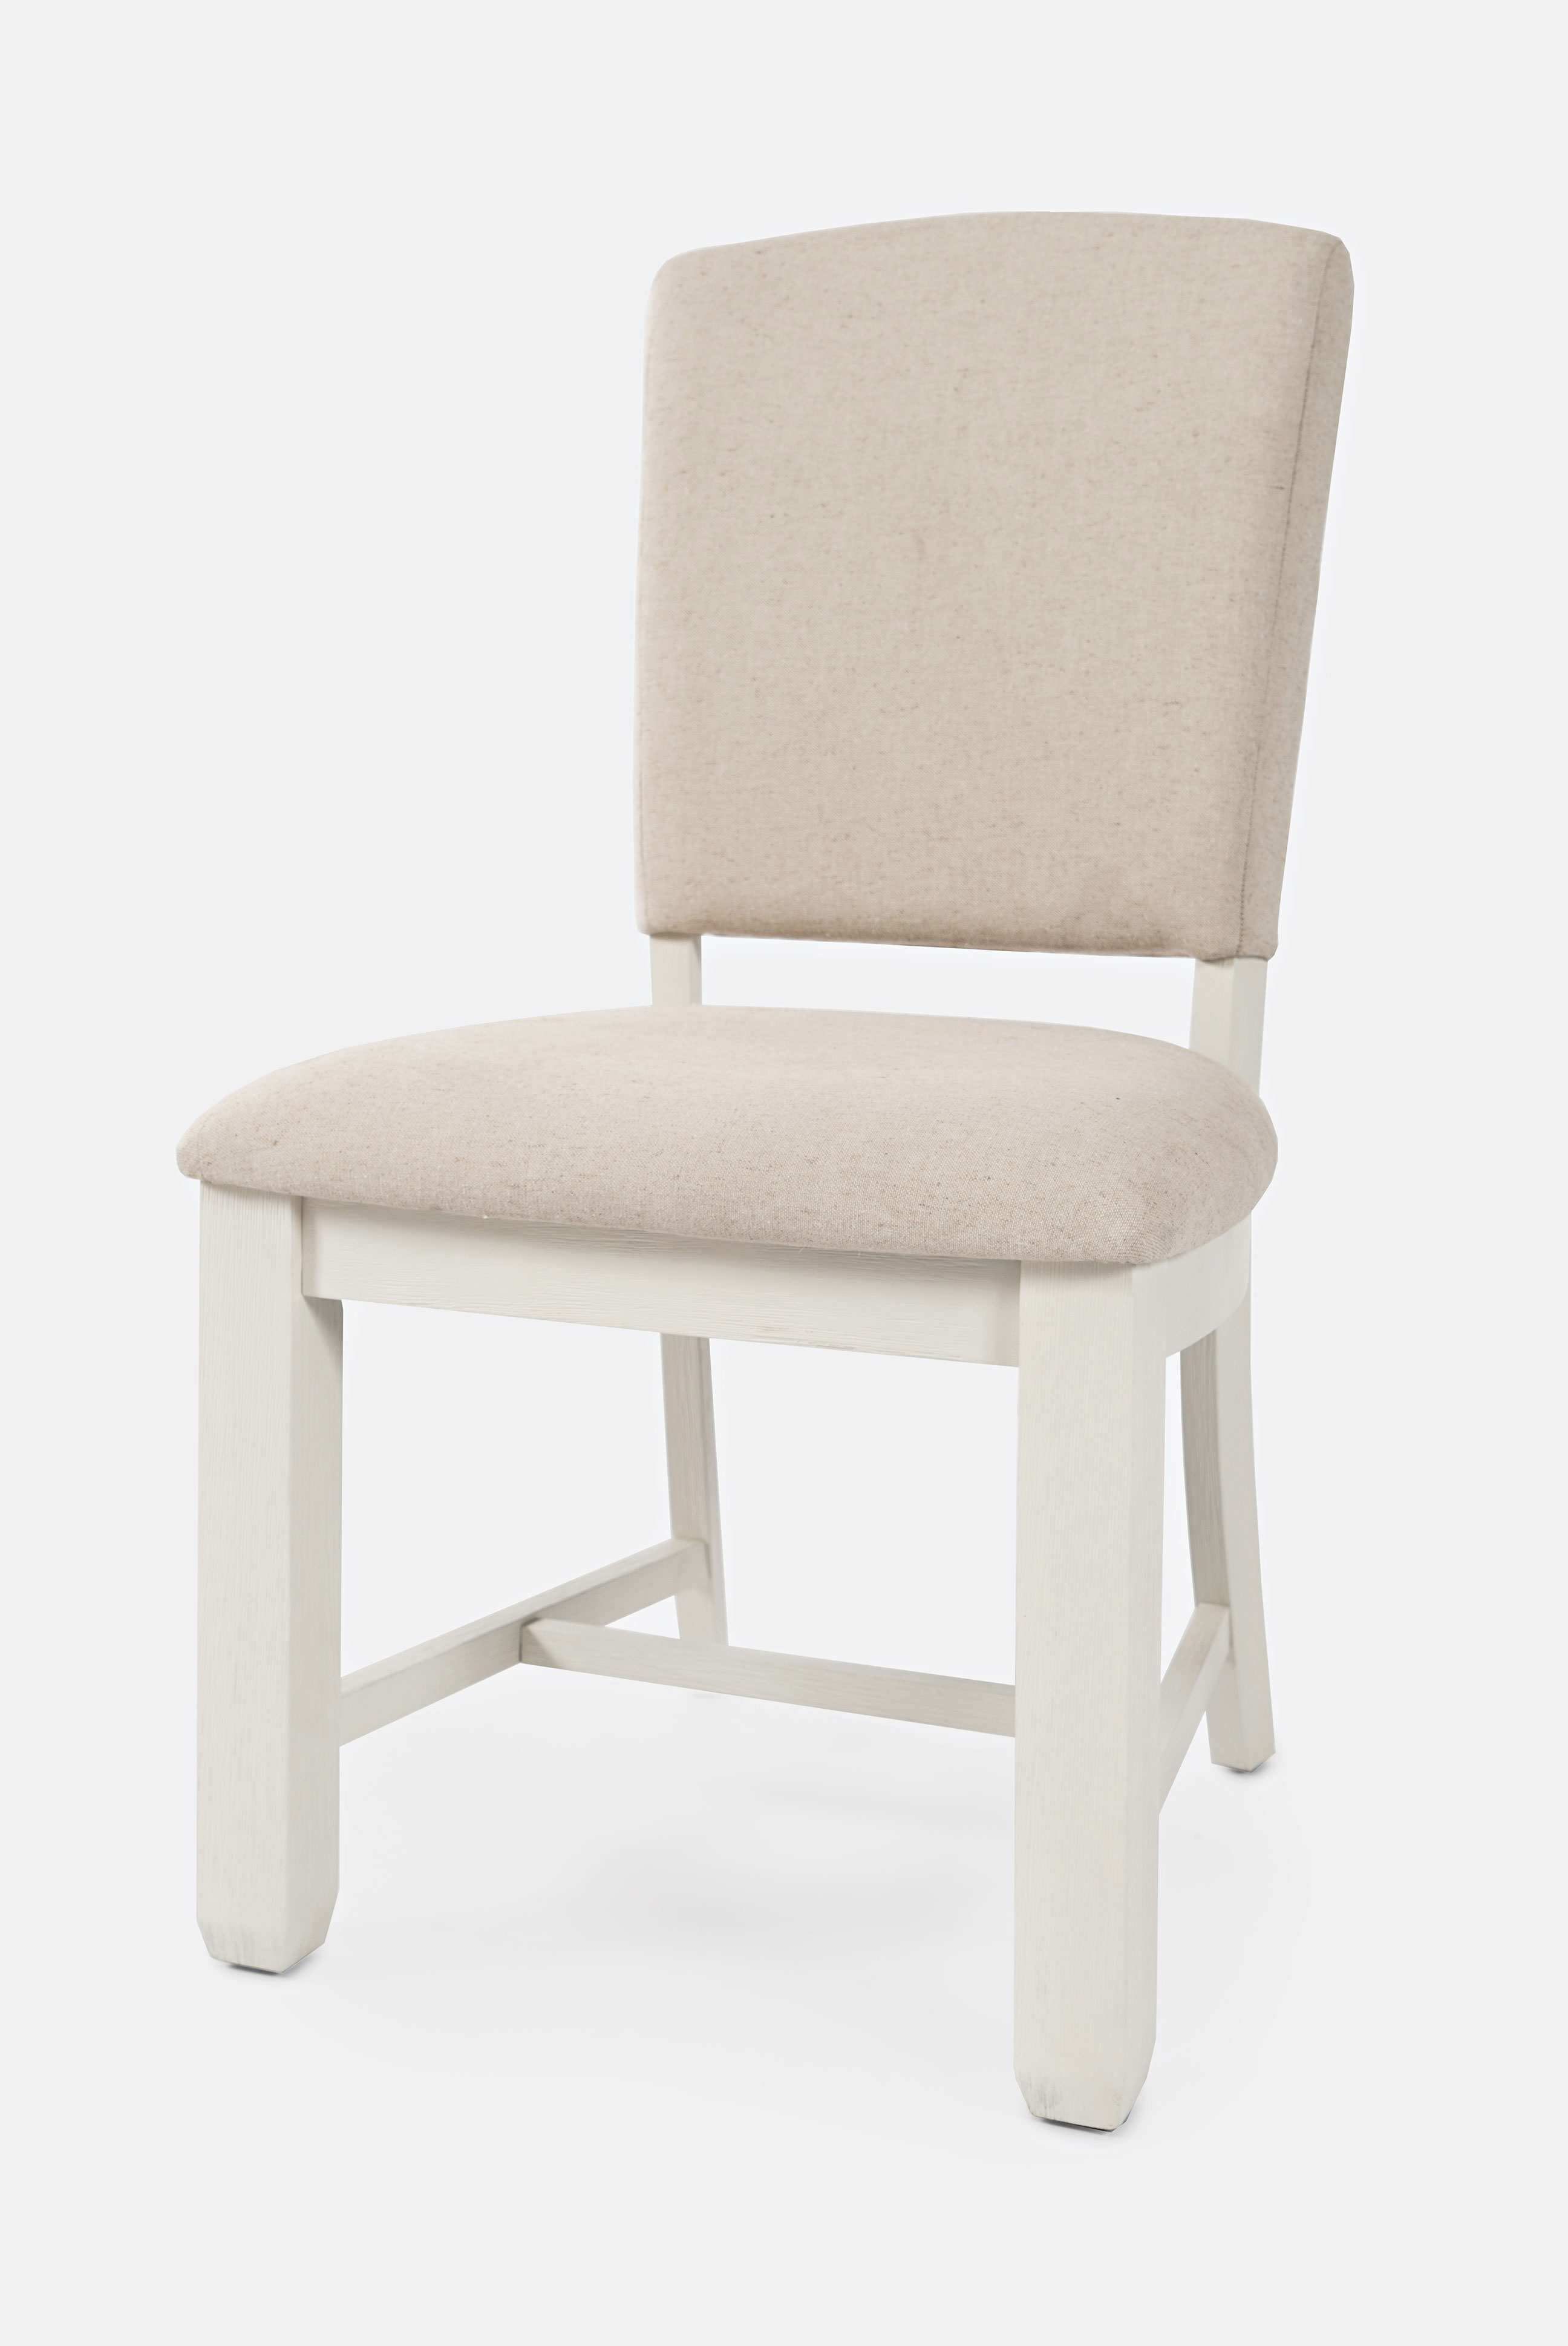 Dana Point Upholstered Chair Set Of 2 By Jofran Furniture